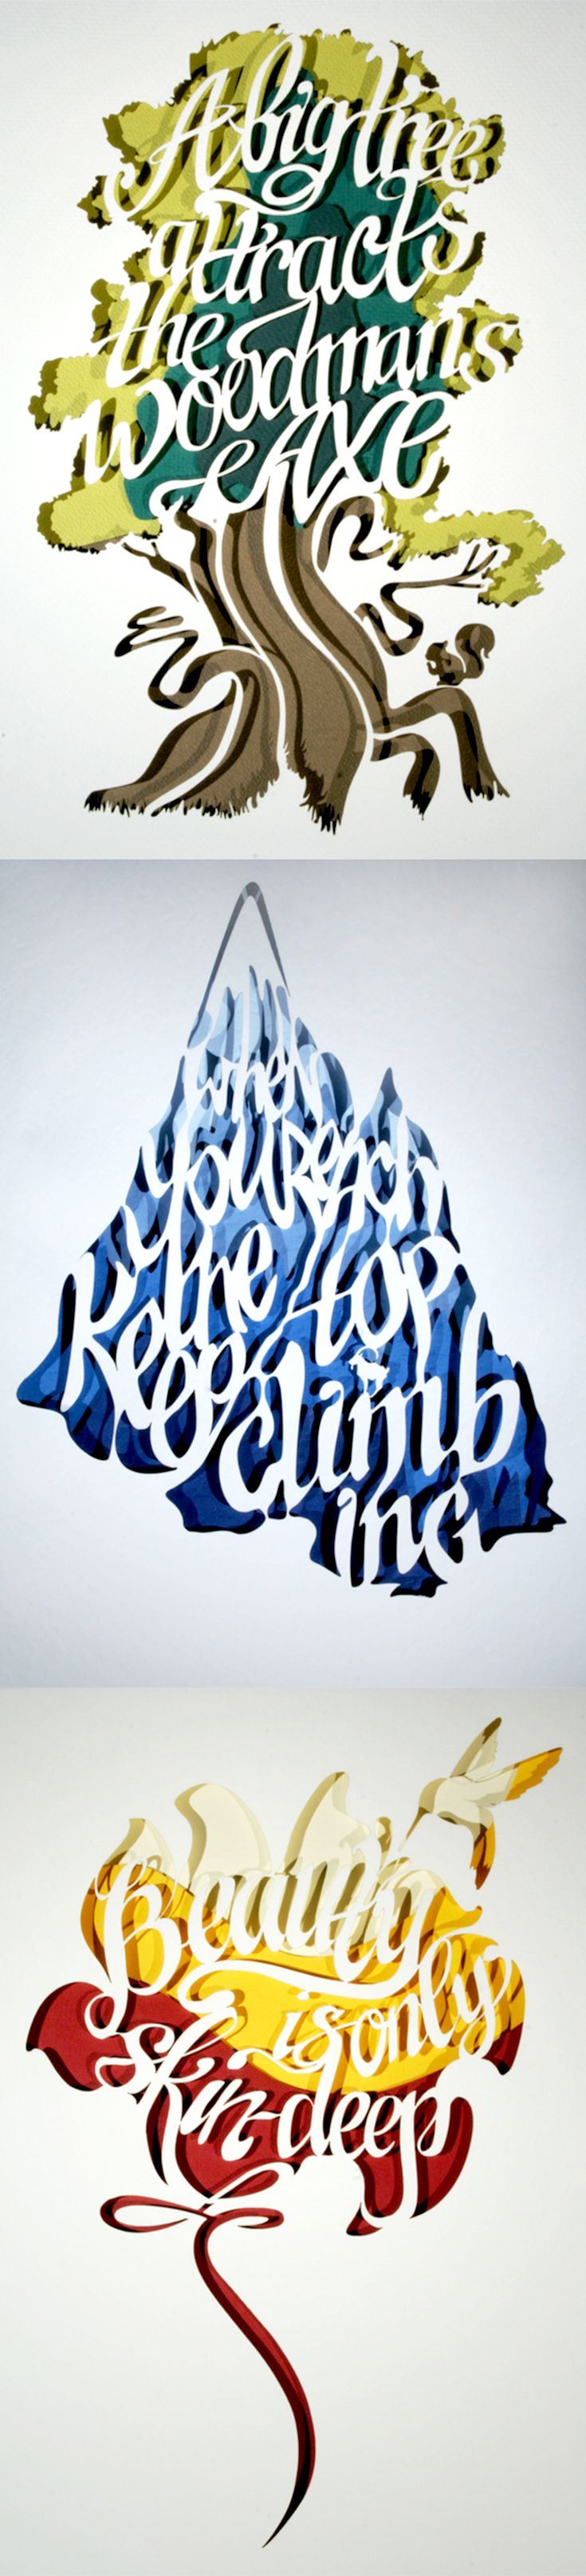 Click for more pics! | Proverbs: Layered Paper Cut Typography #paper #type